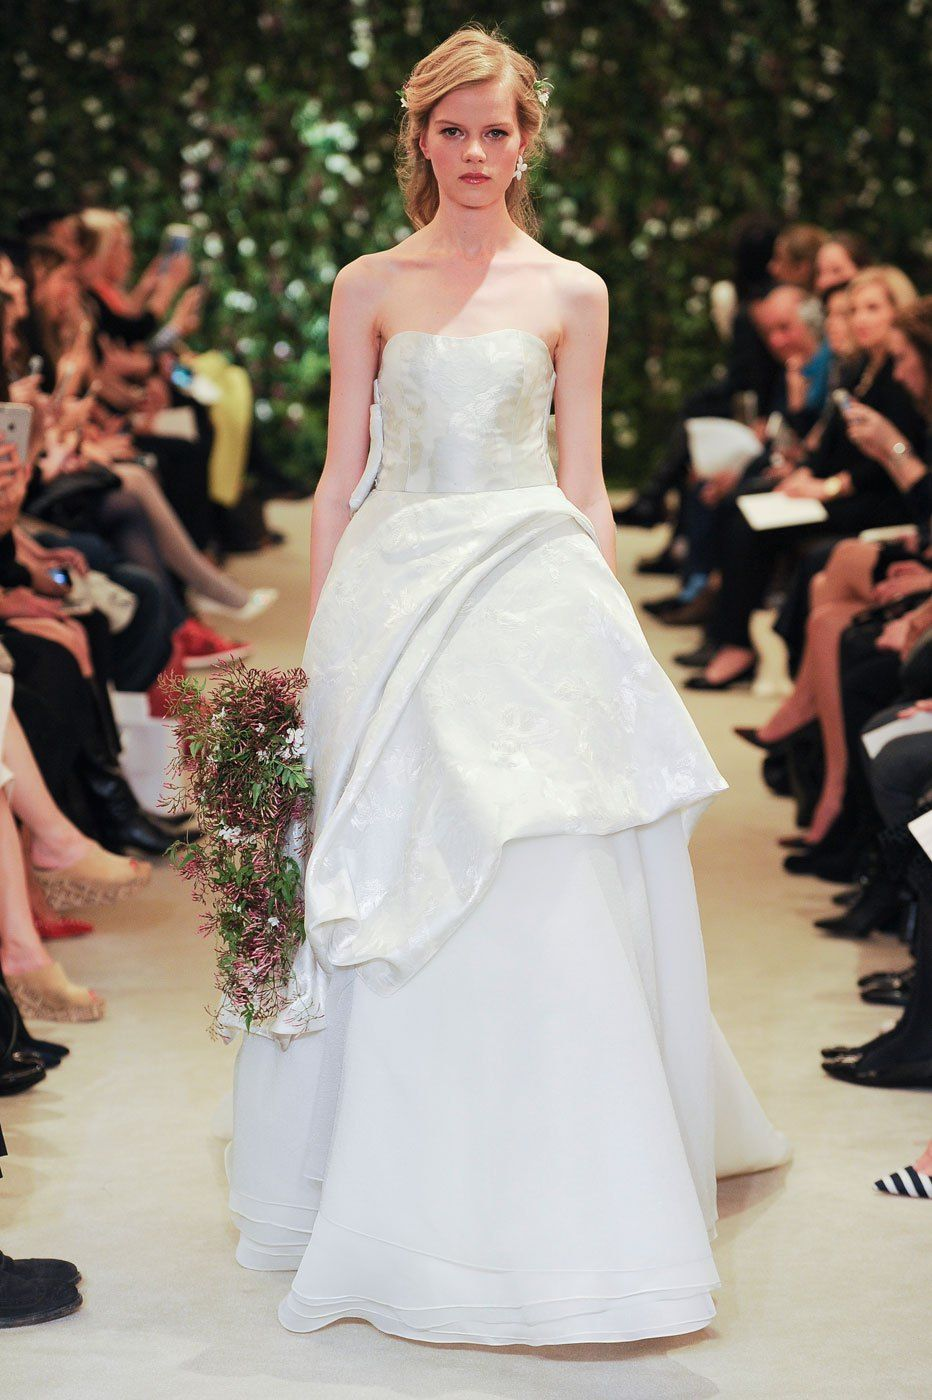 How to shop for a wedding dress tips every bride should know